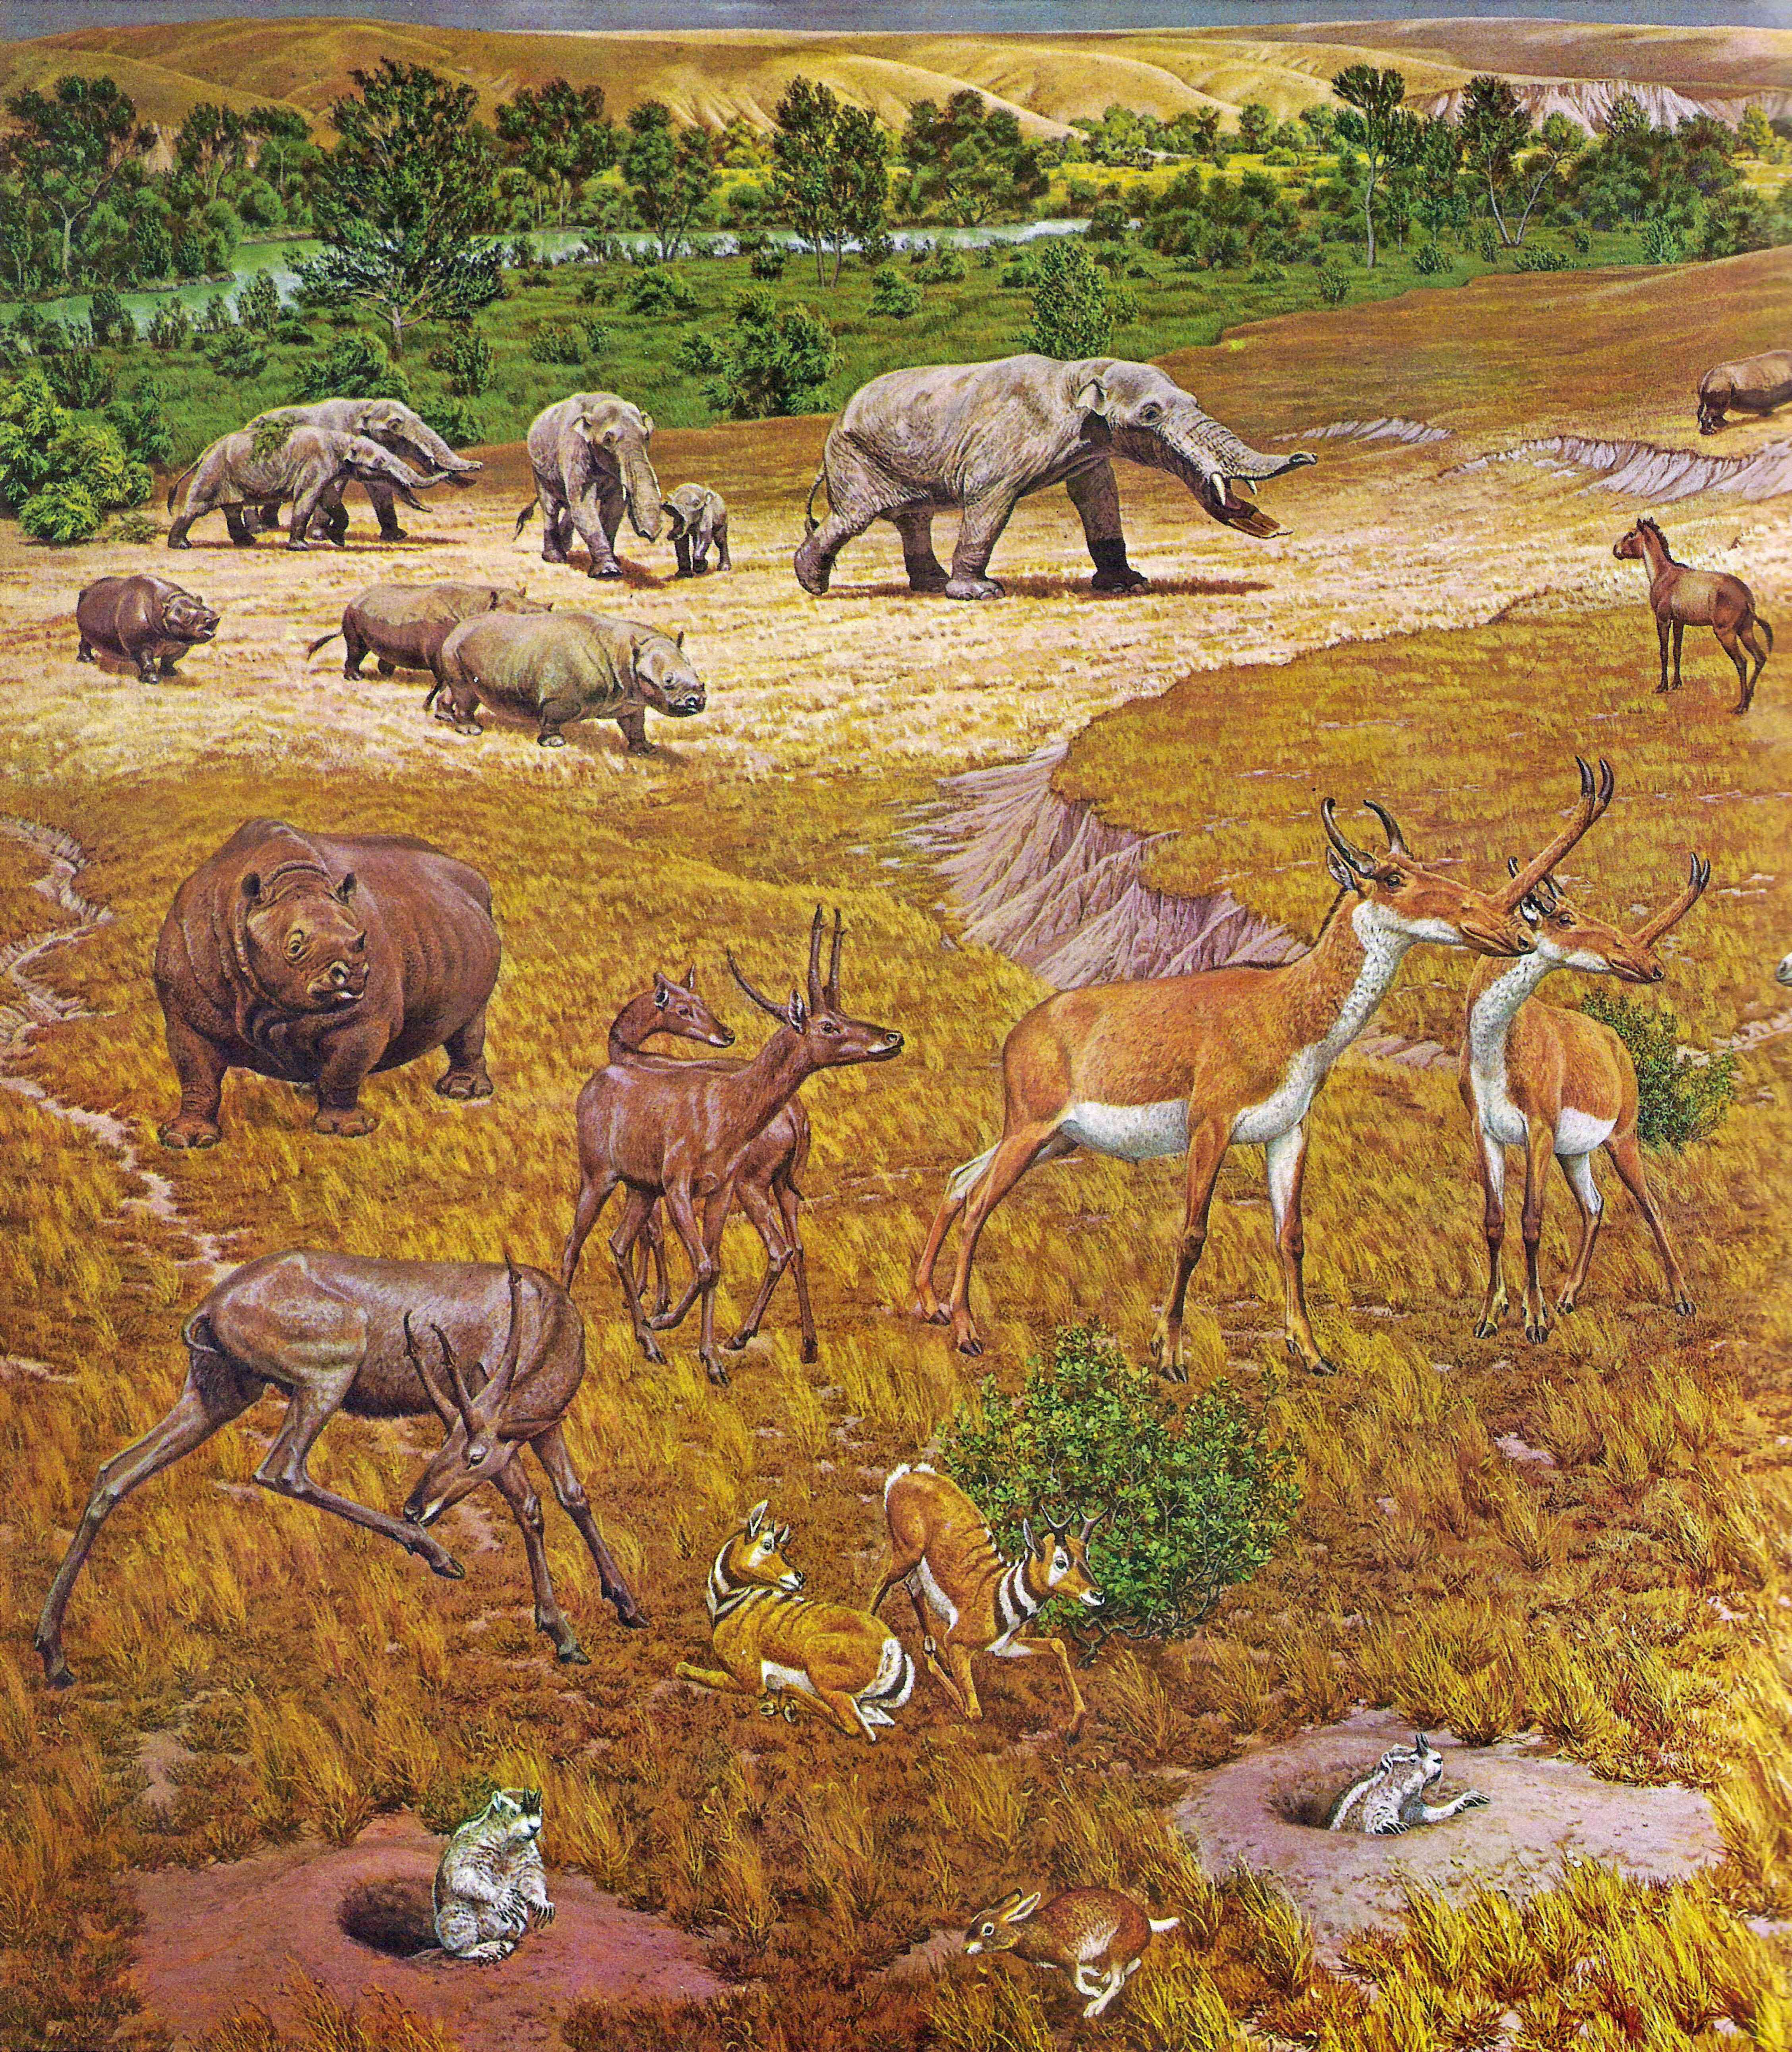 Pliocene fauna of North America, from a 1964 mural made for the Smithsonian Museum